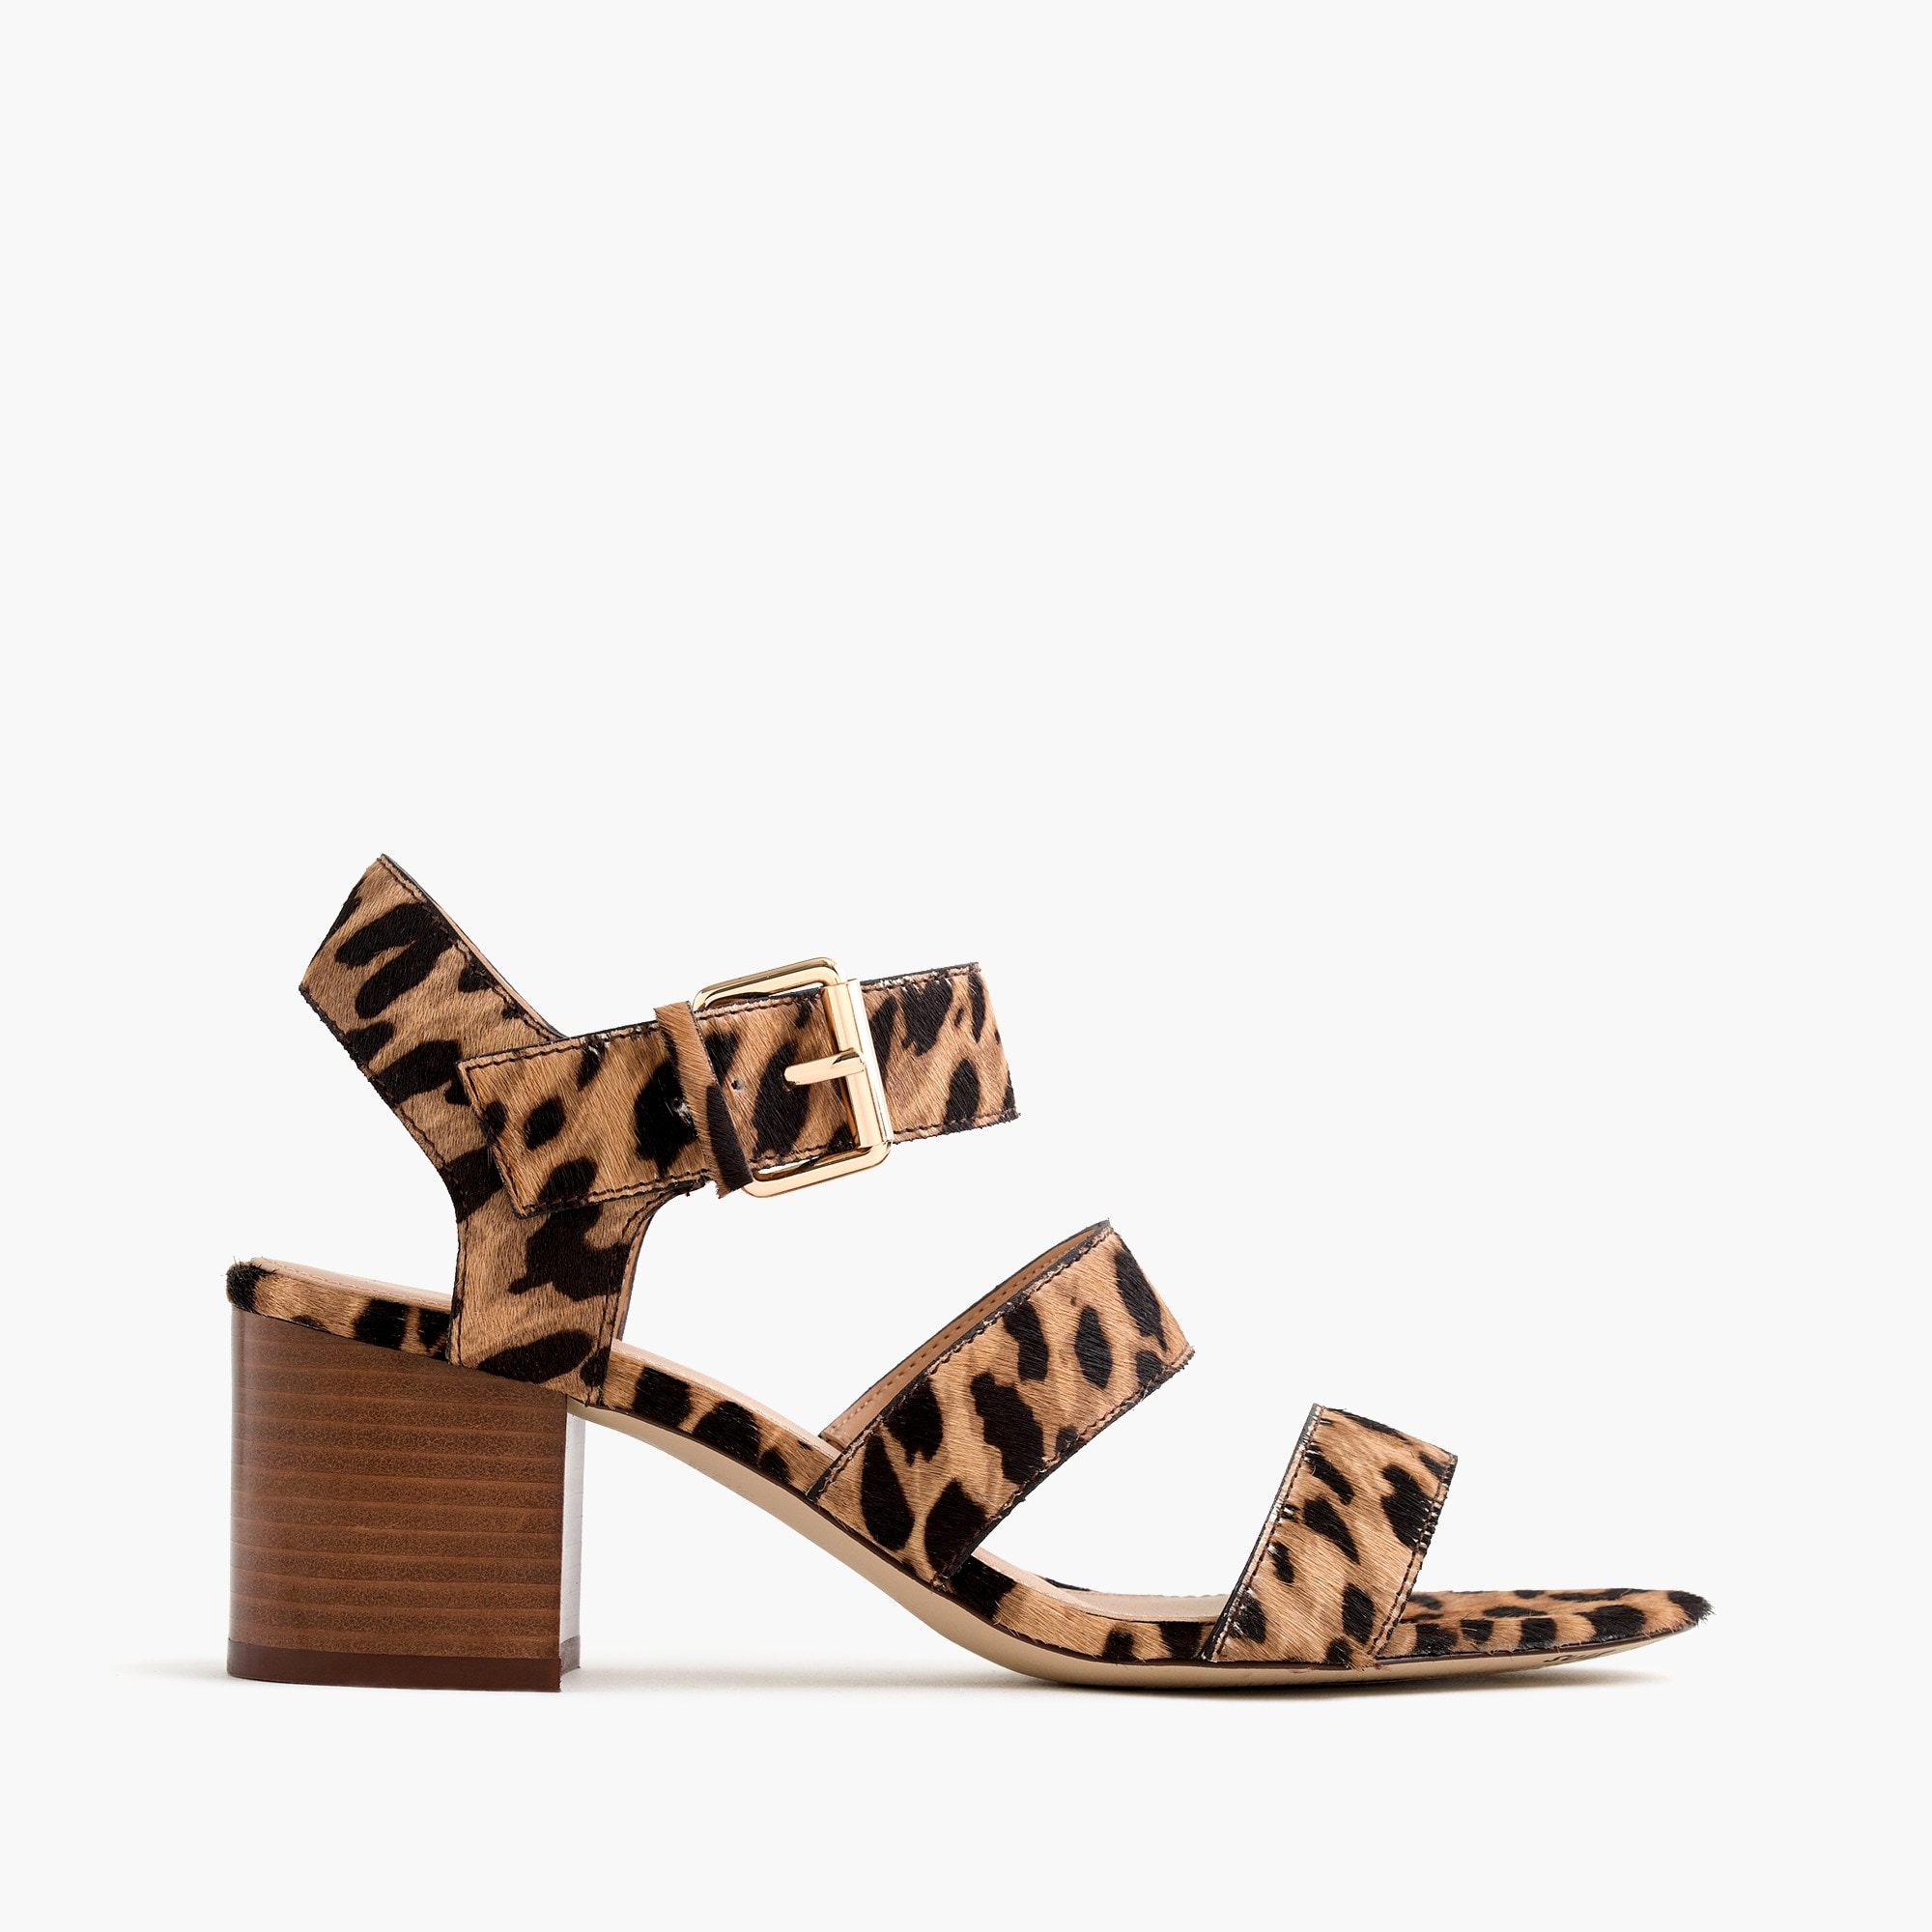 Image 3 for Three-strap sandals in leopard calf hair